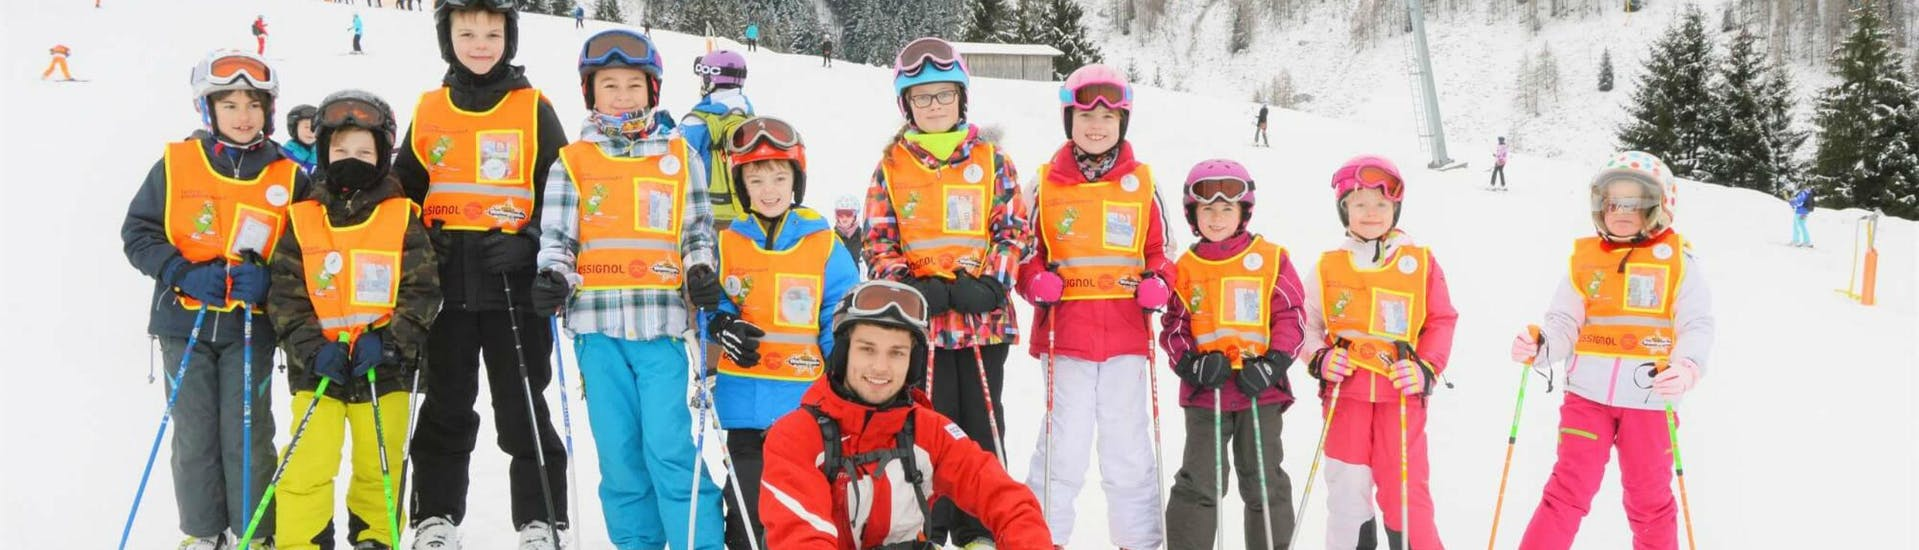 """A group of children and their ski instructor from S4 Snowsport Fieberbrunn are smiling at the camera during their Kids Ski Lessons """"Juniors programme"""" (15-18 years)."""